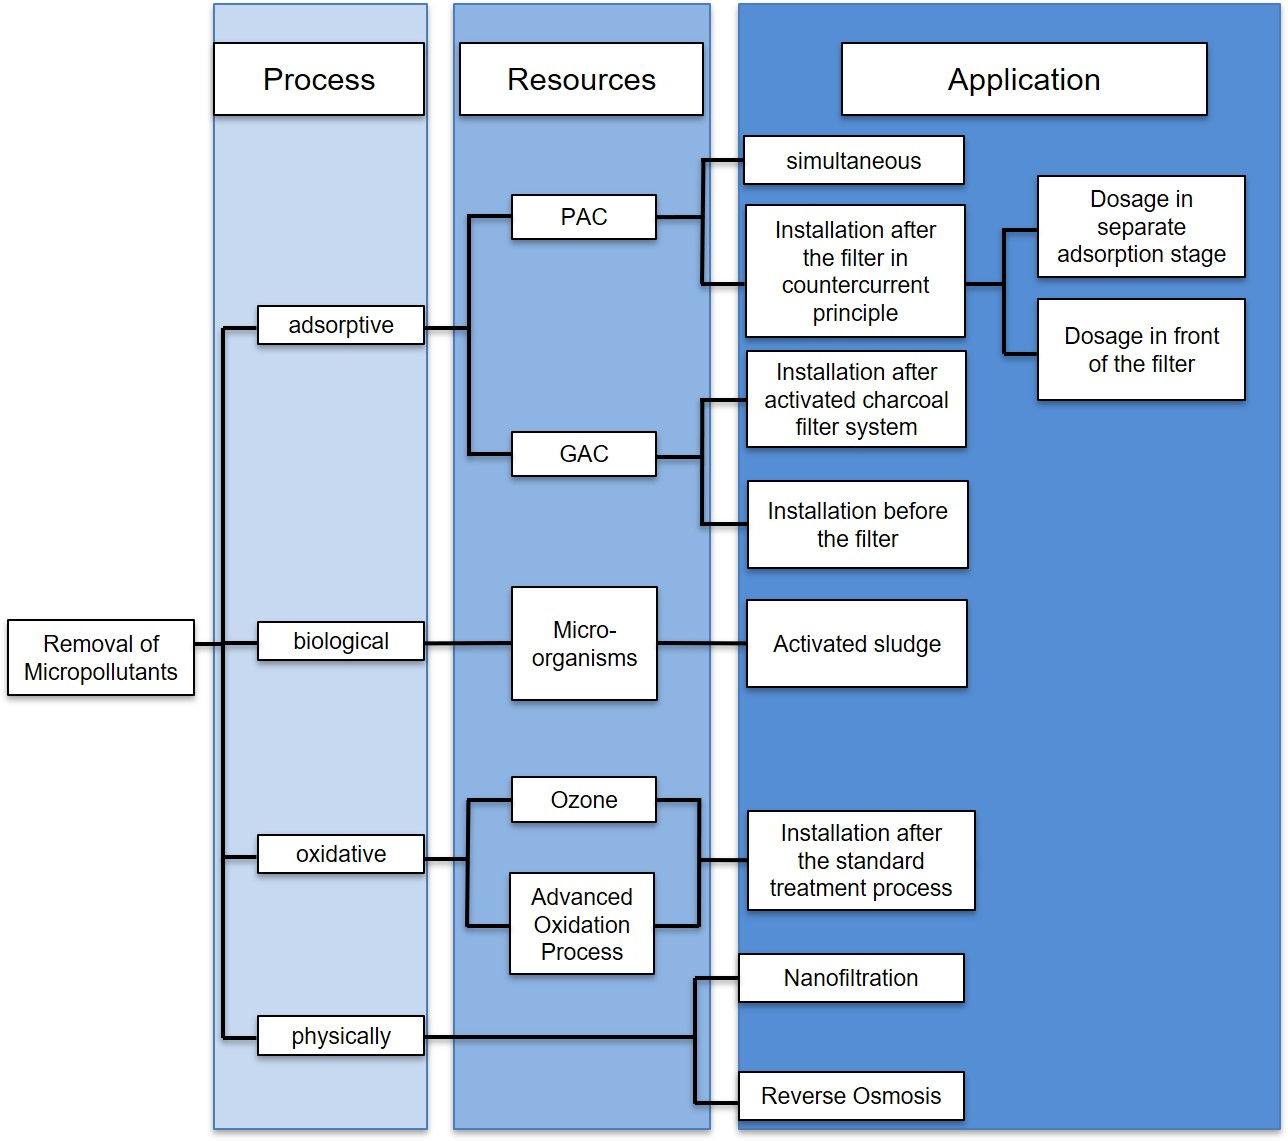 Overview about the state of the art for the removal of micropollutants from waters (here: wastewater treatment)